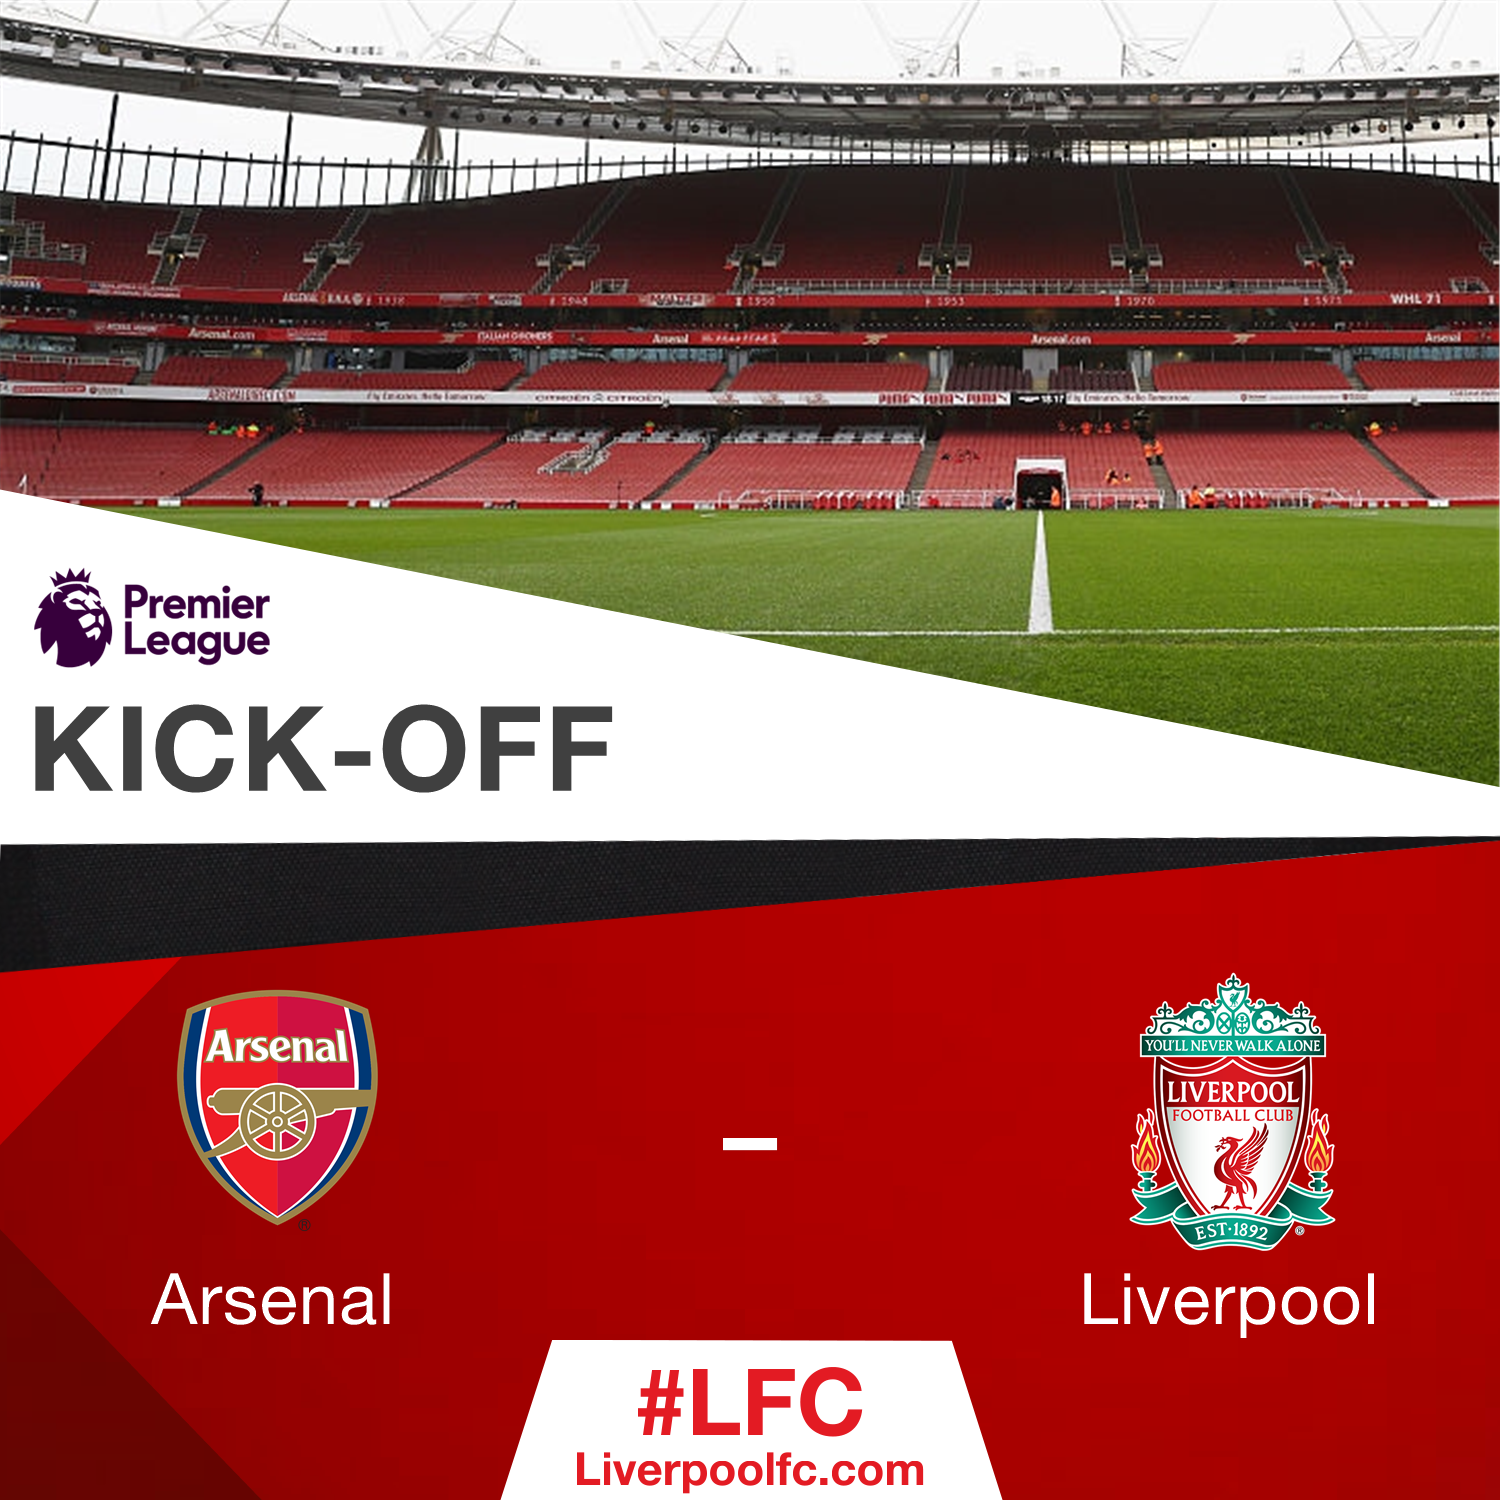 """Liverpool FC on Twitter: """"KICK-OFF: Our 16/17 ..."""